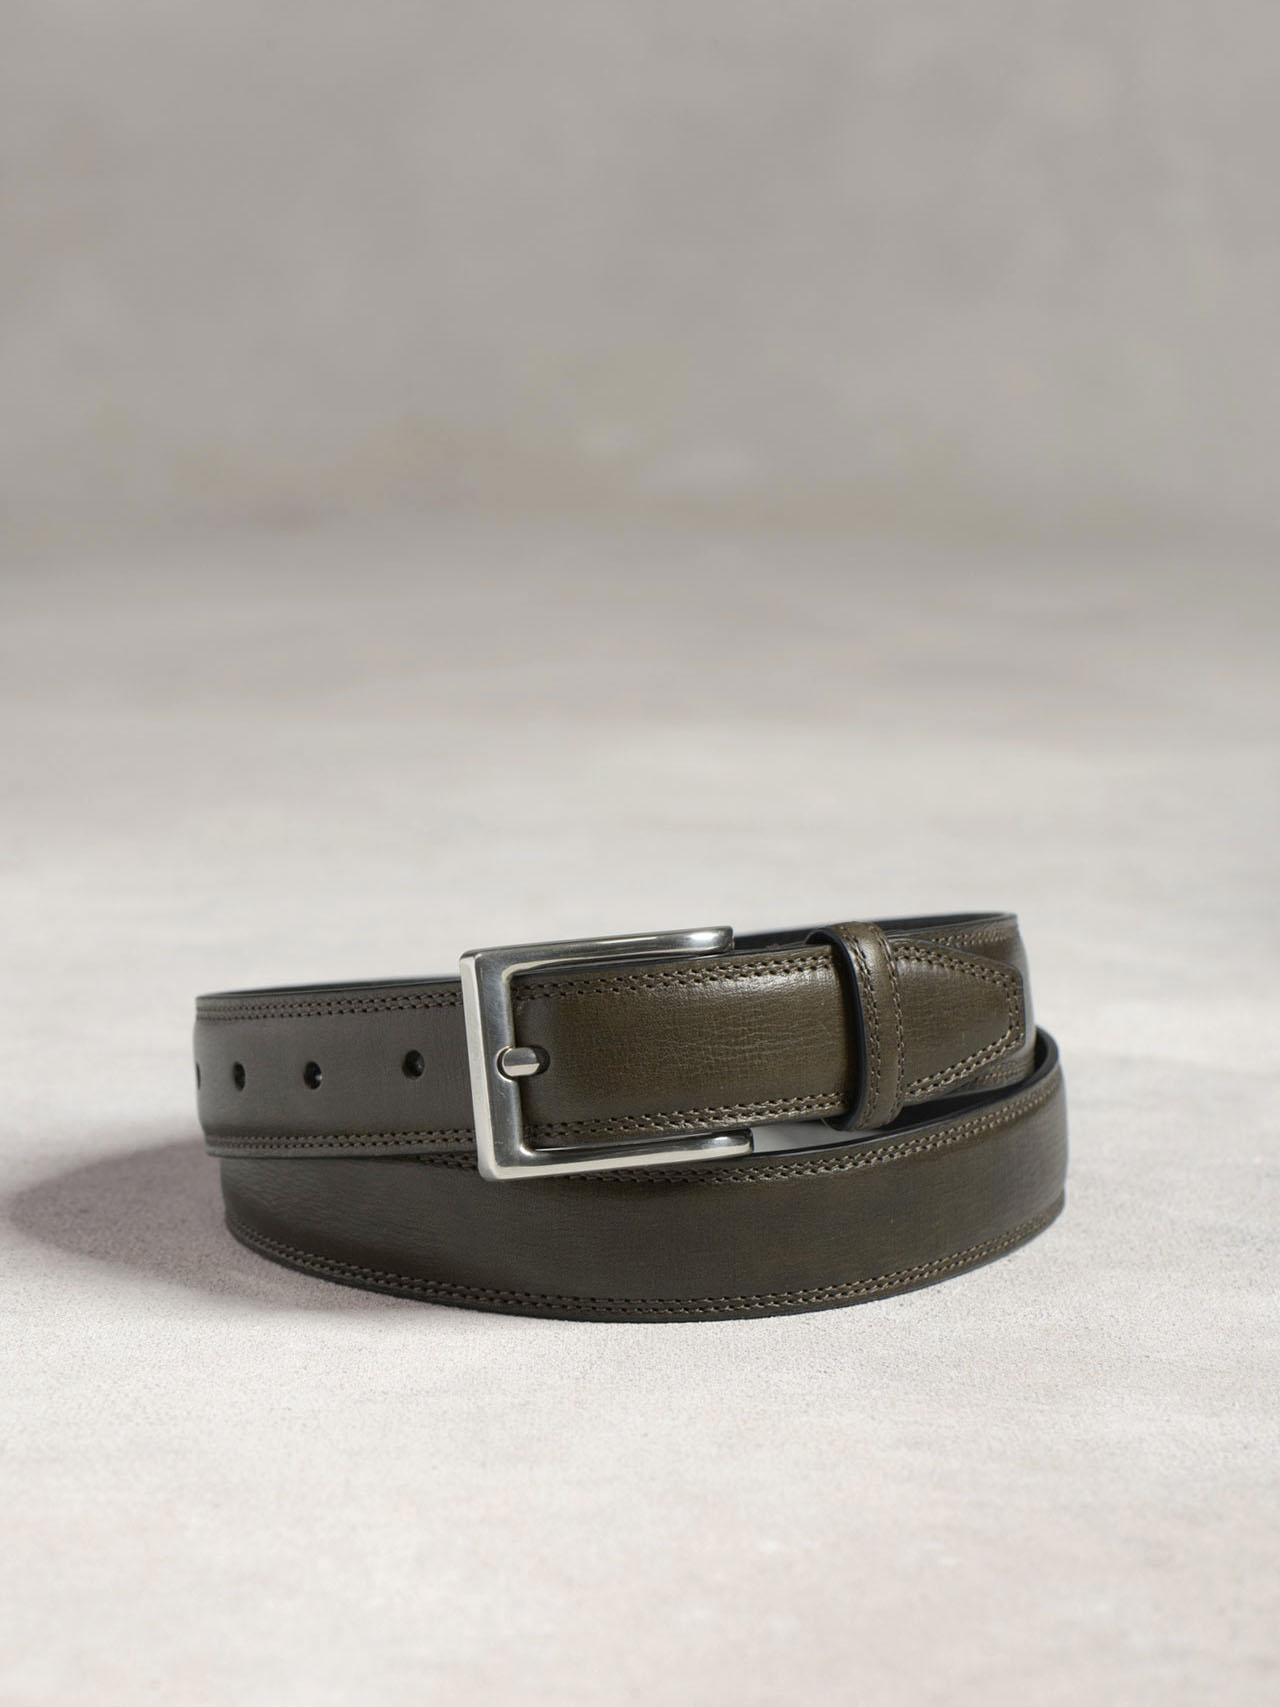 DOUBLE STITCH PANEL BELT W/ SQ HARNESS